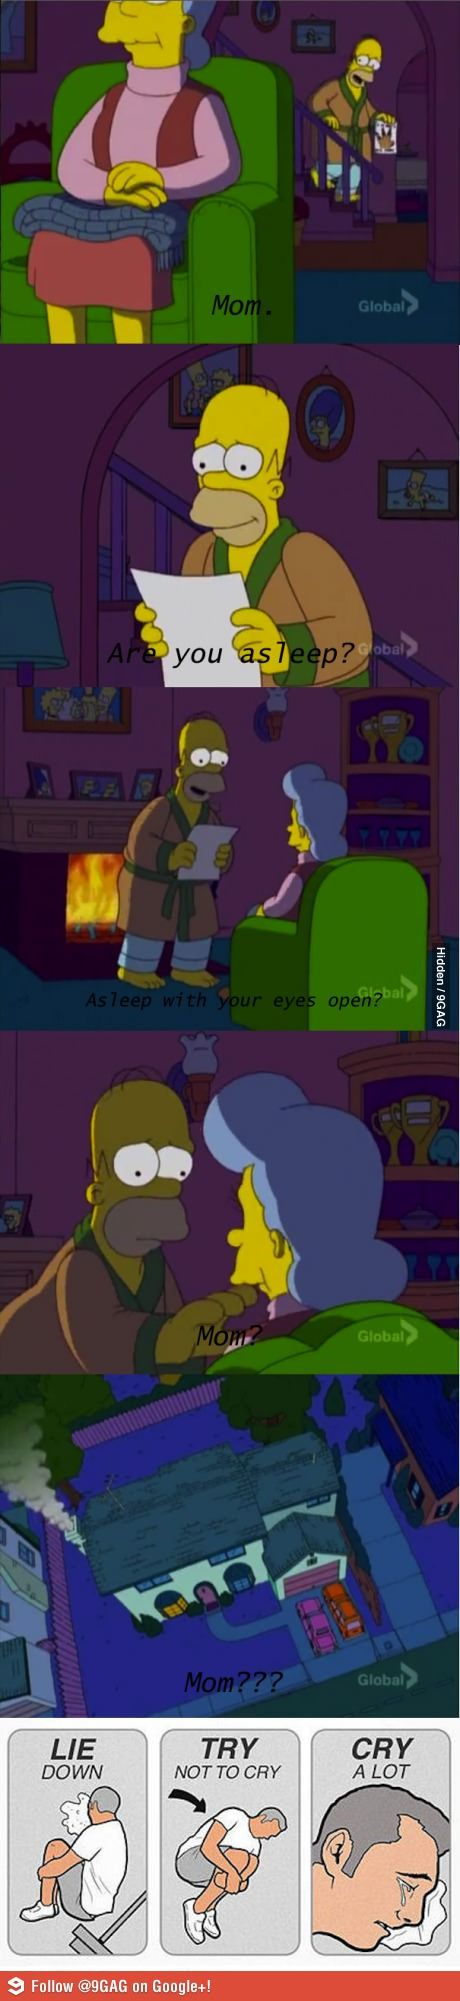 One of the saddest moments of the Simpsons, especially impressive for as late as season 19.